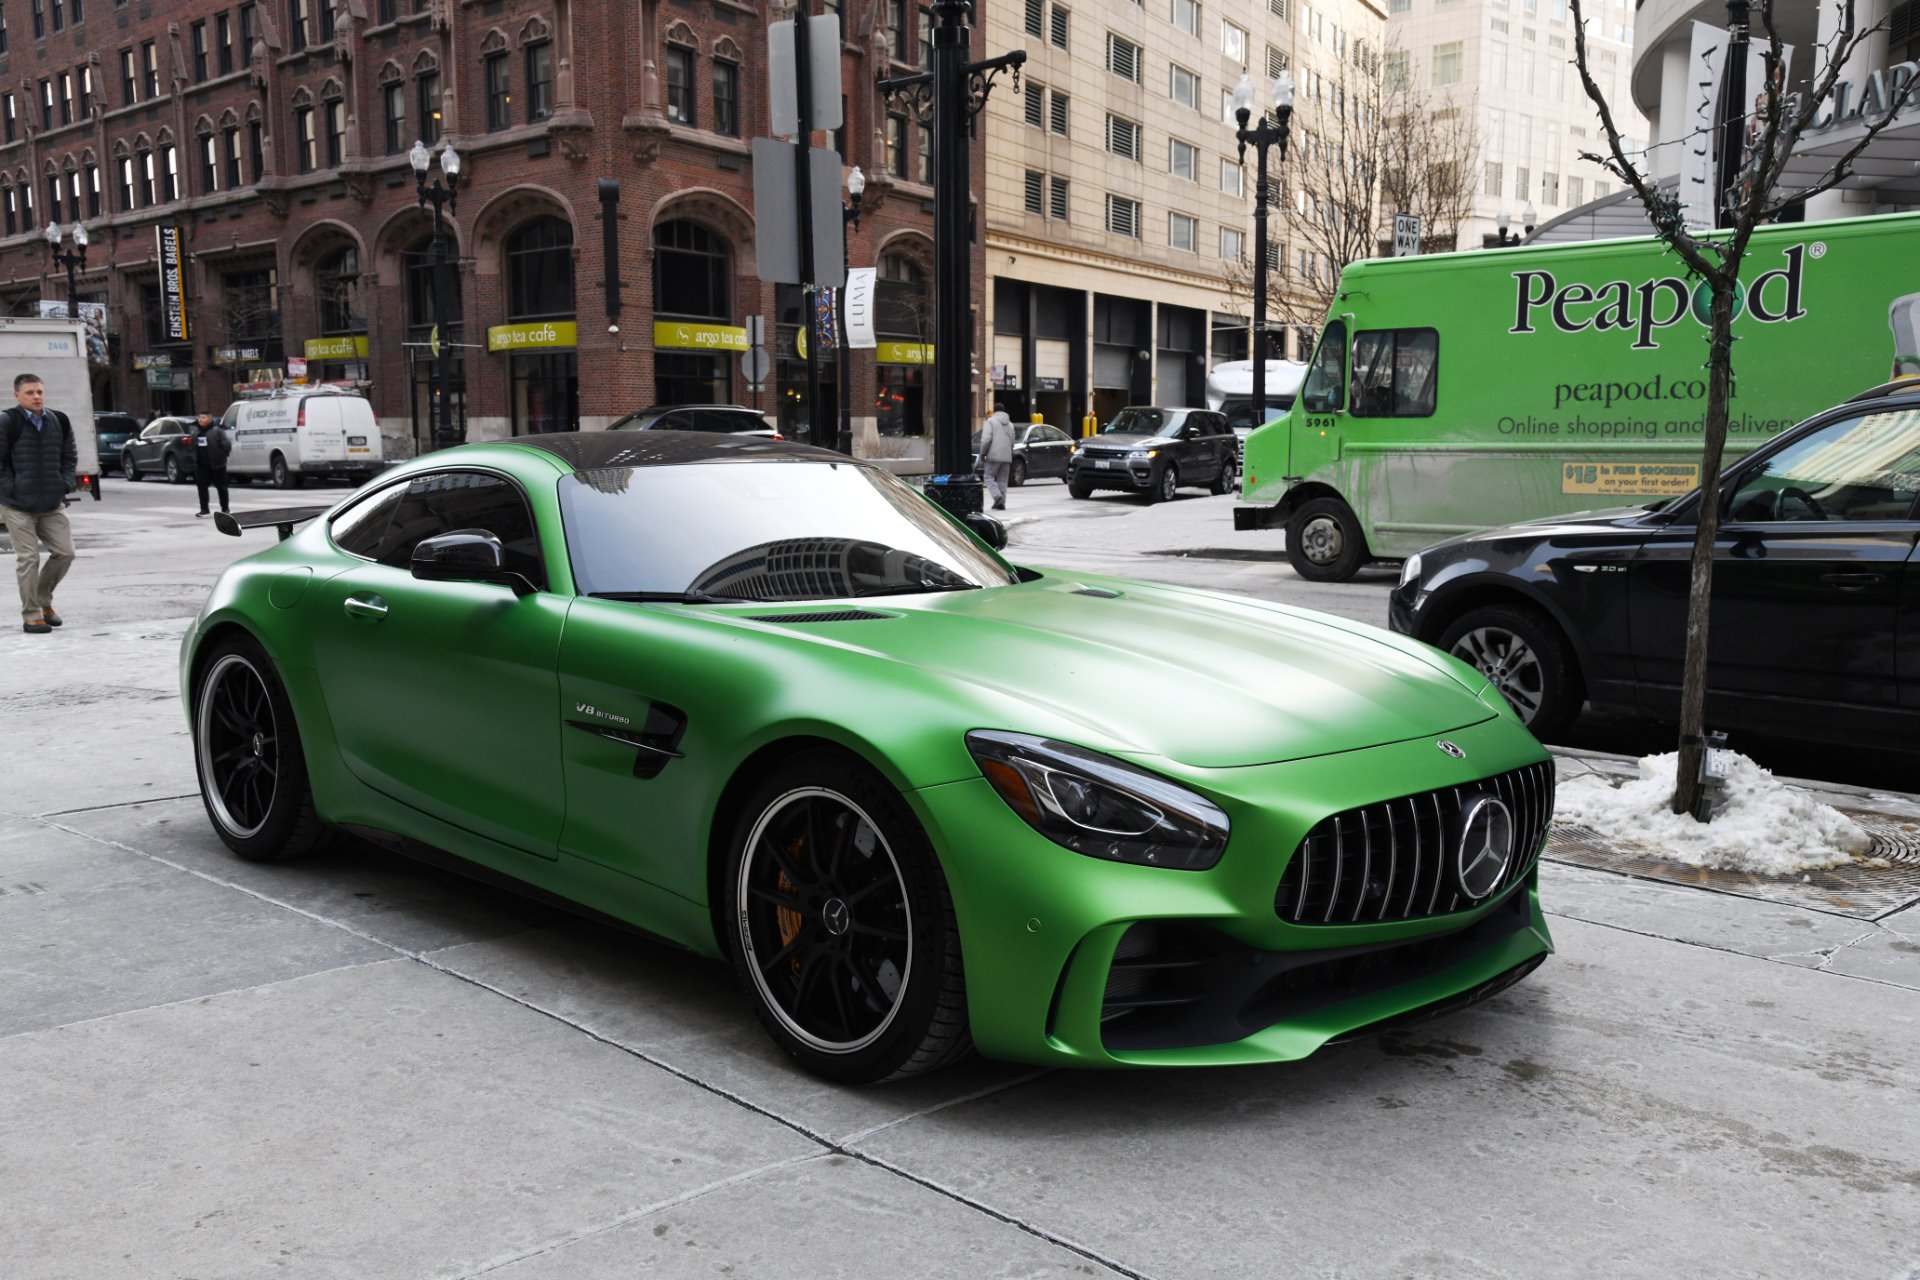 2018 mercedes benz amg gt r stock r493a for sale near for Mercedes benz chicago dealers